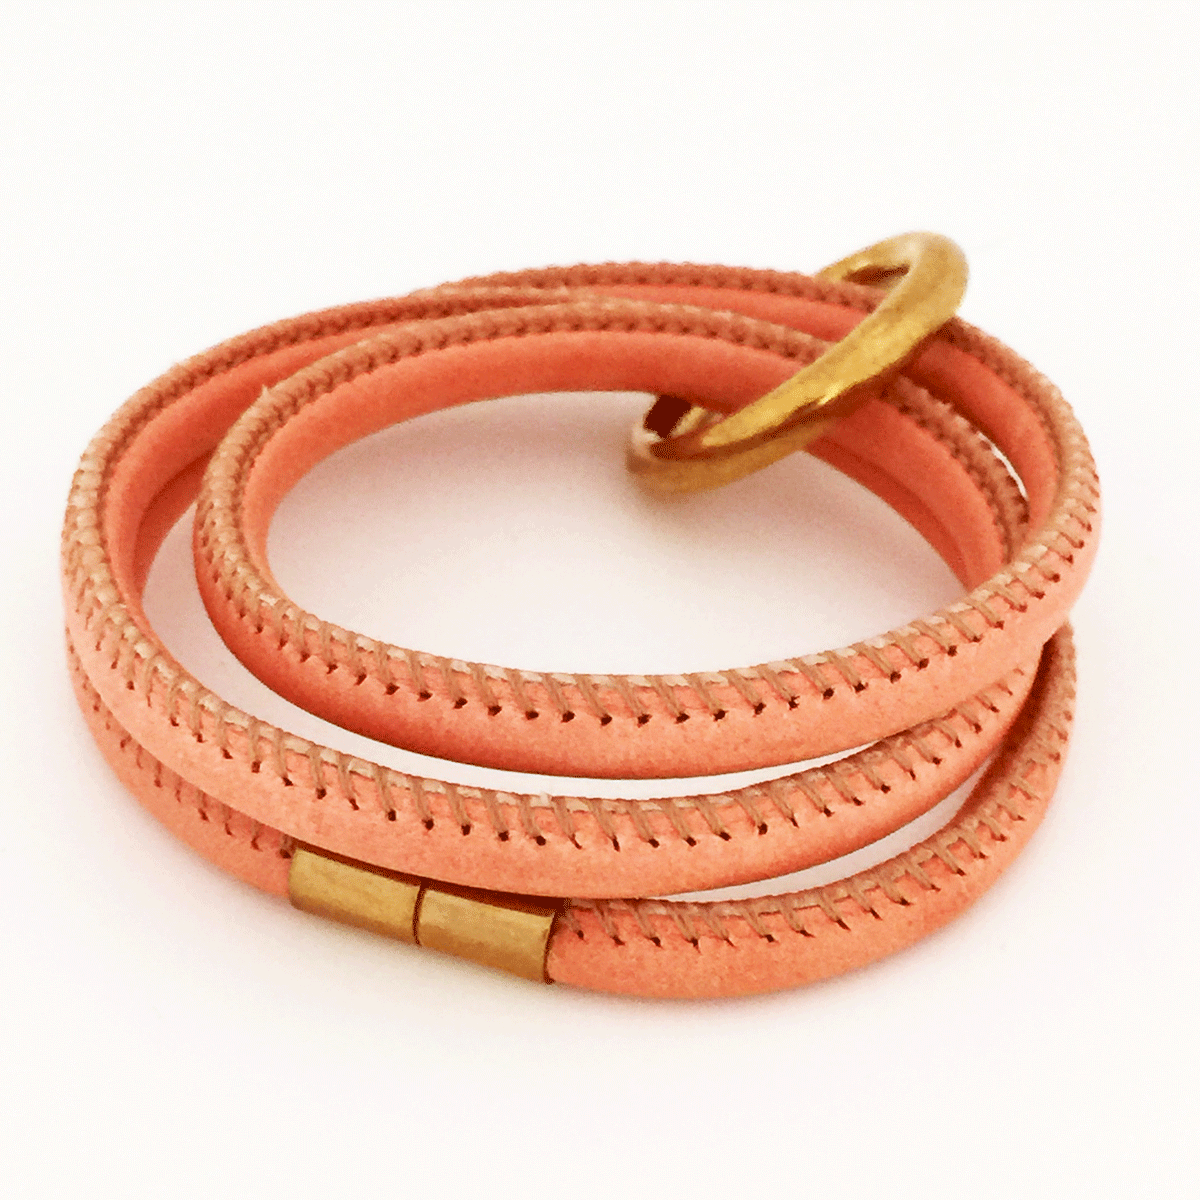 Bijou createur email little woman paris royal blush bracelet